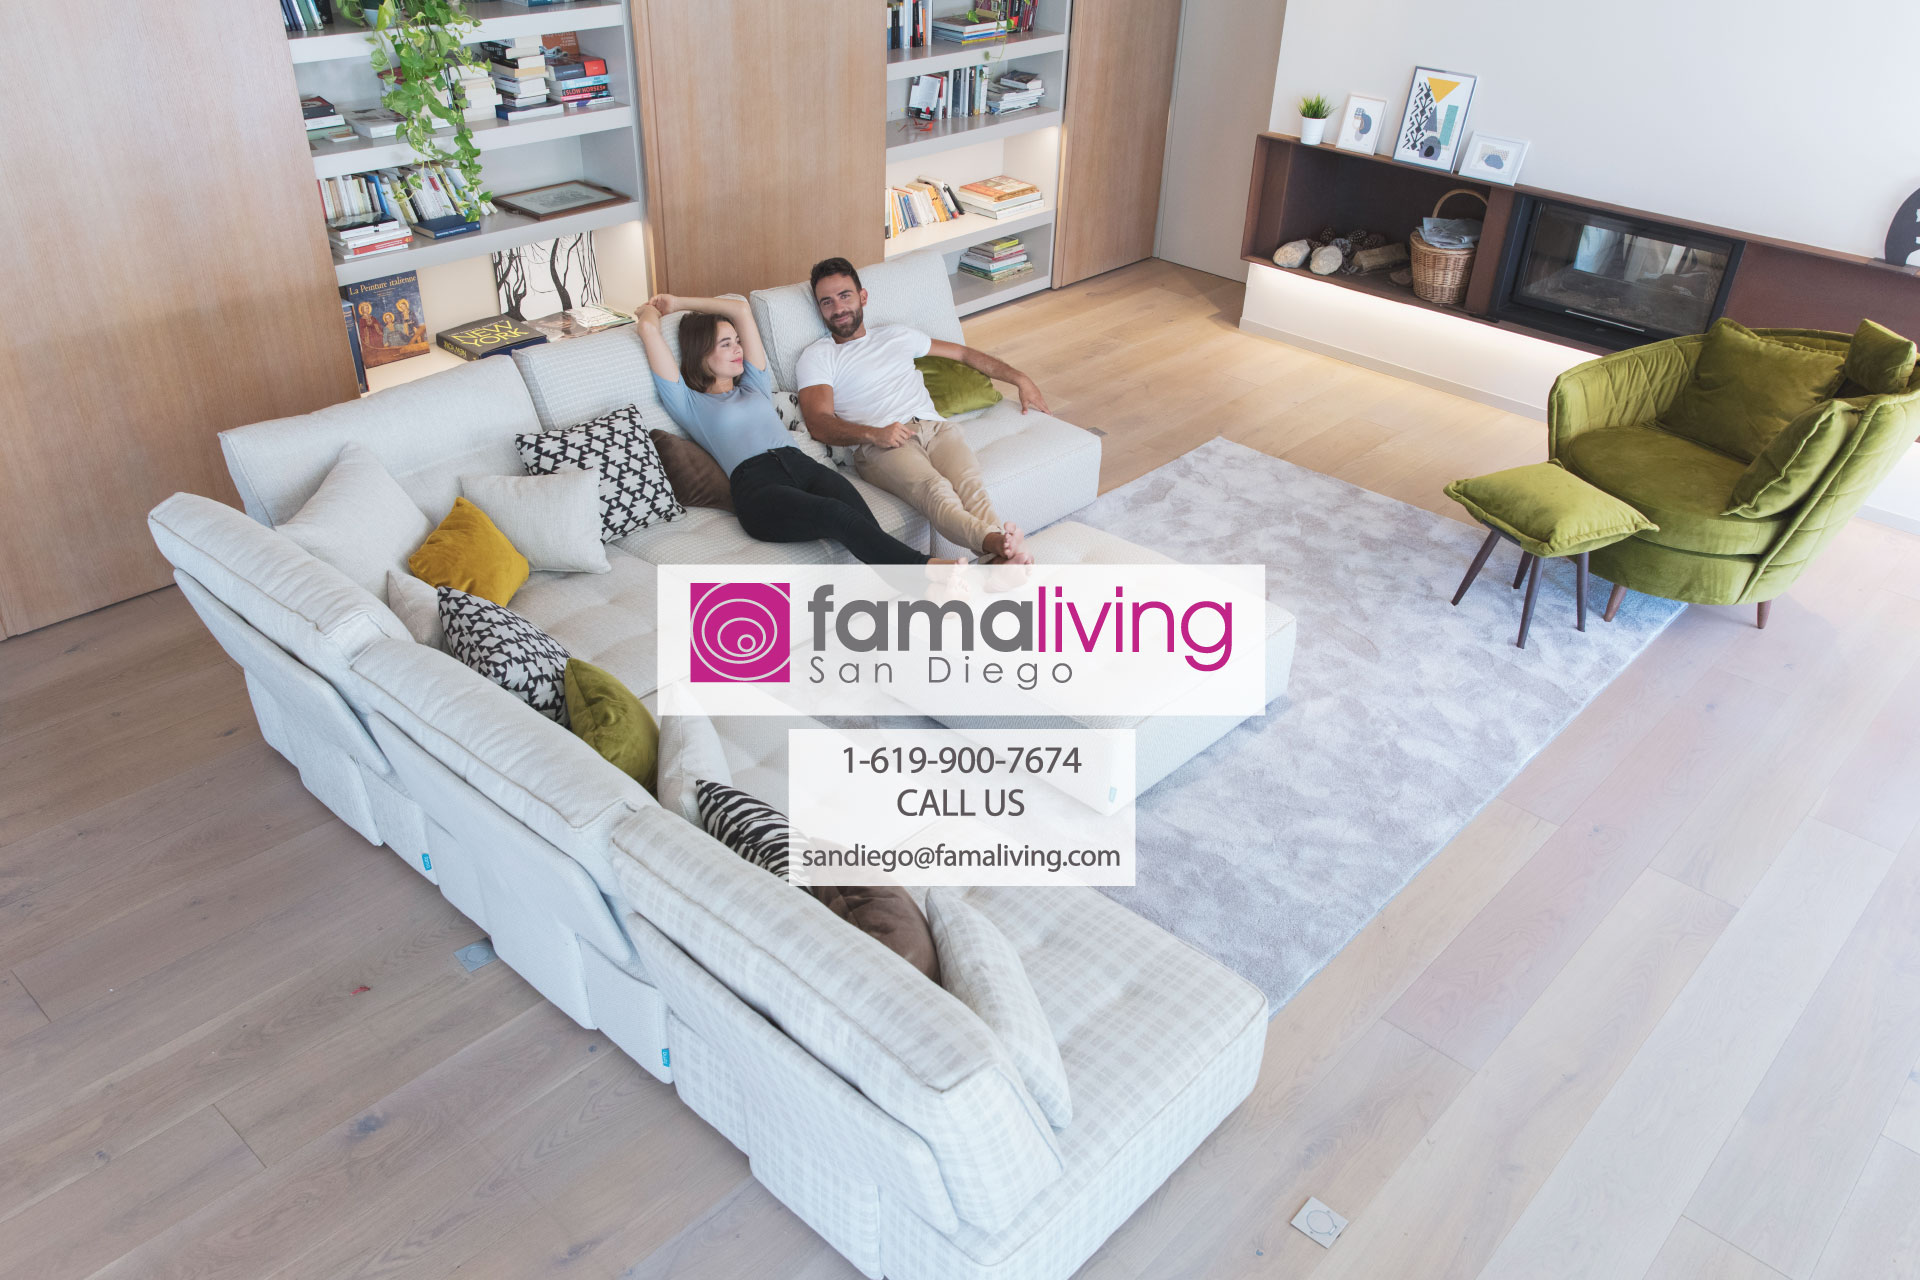 https://www.famaliving.com/sandiego